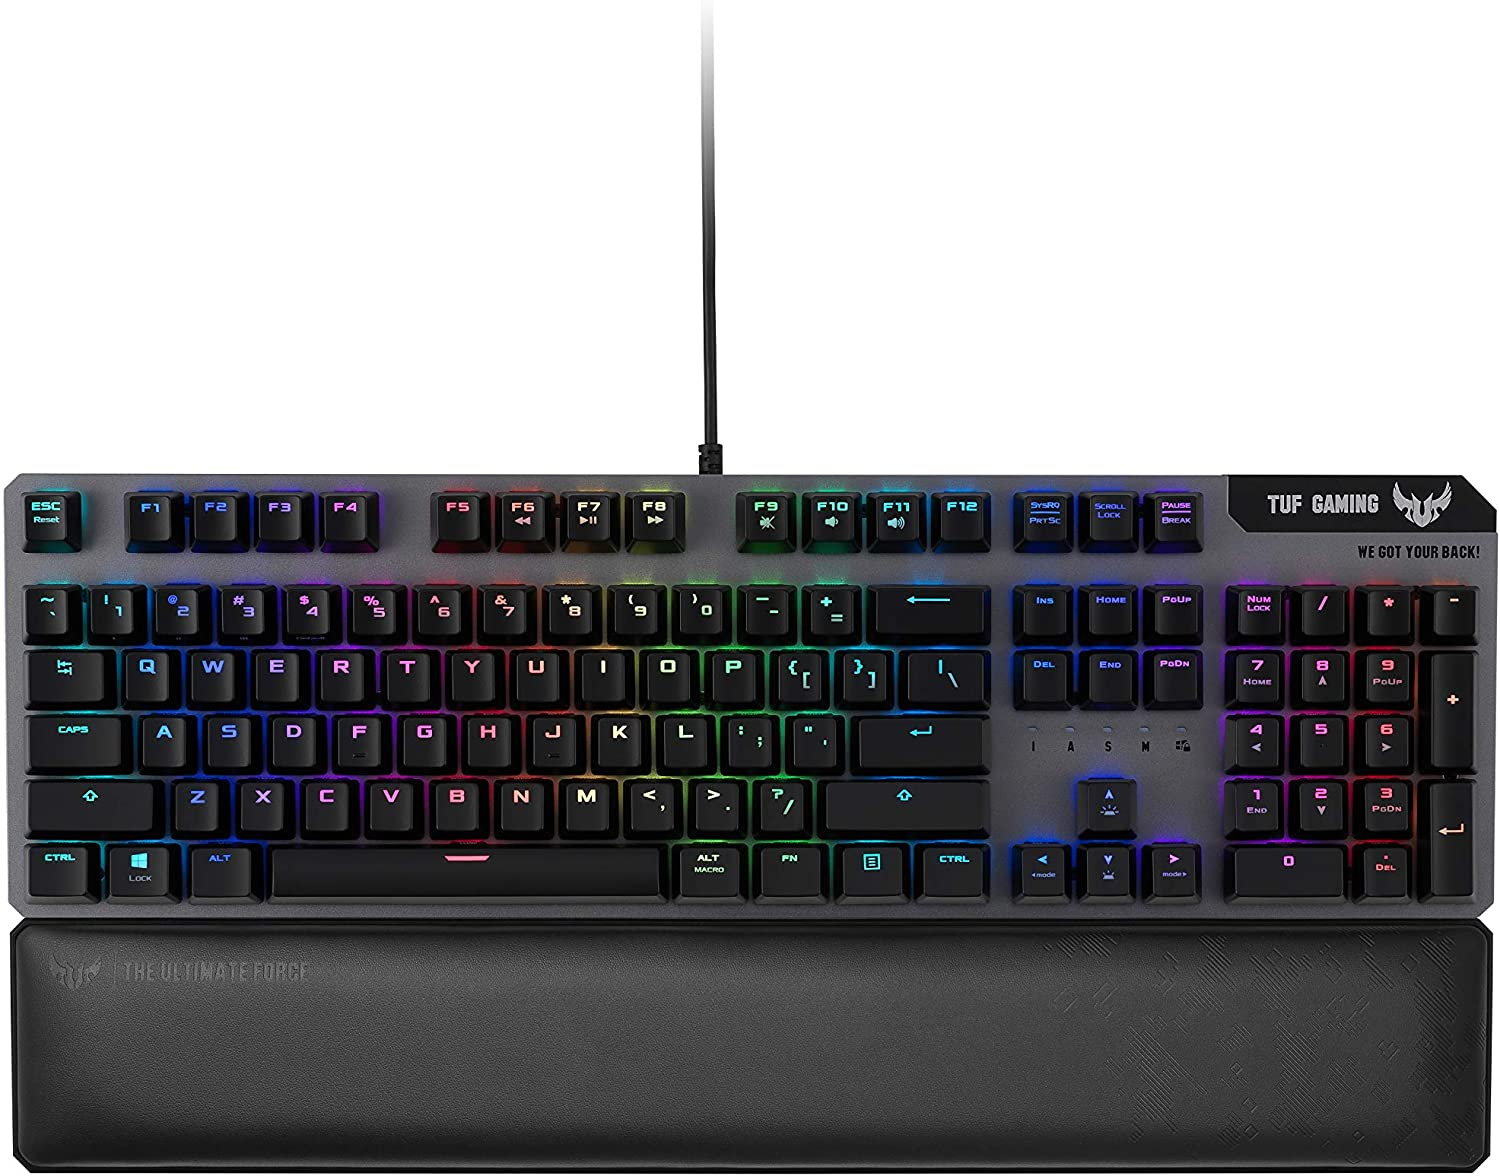 ASUS RA03 TUF GAMING K7 (US layout, optical)